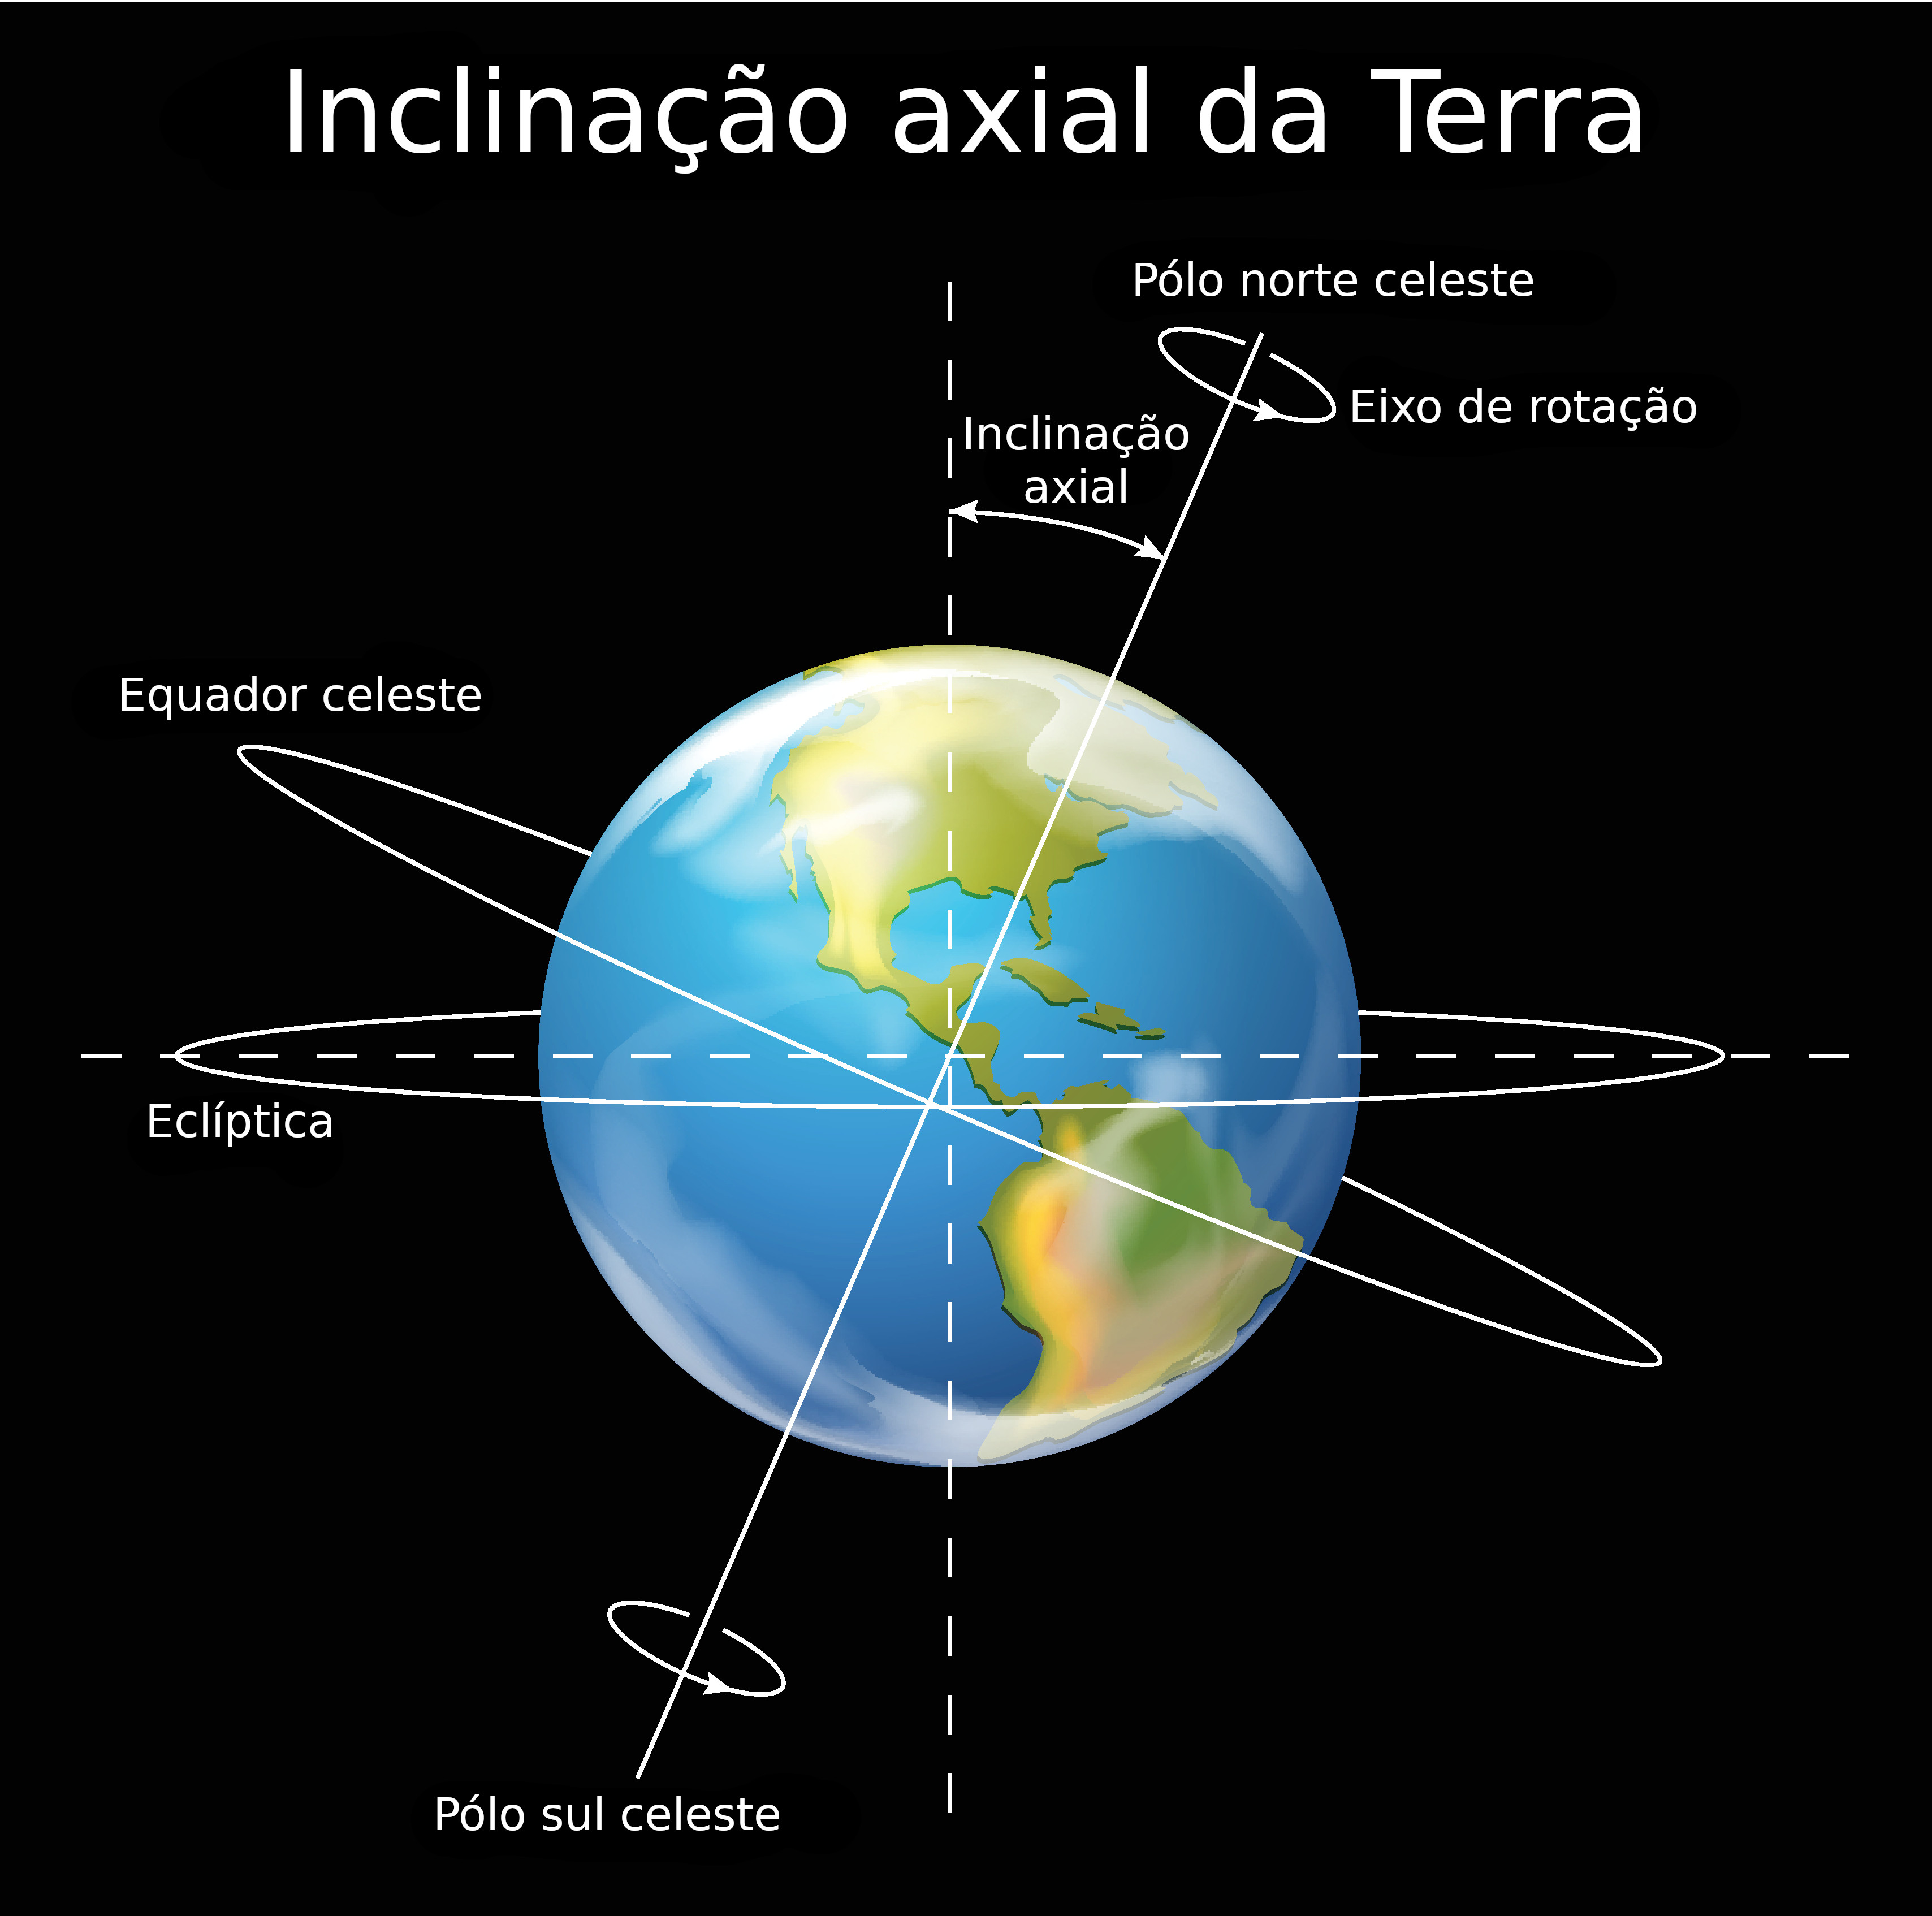 Inclinacao Axial Da Terra